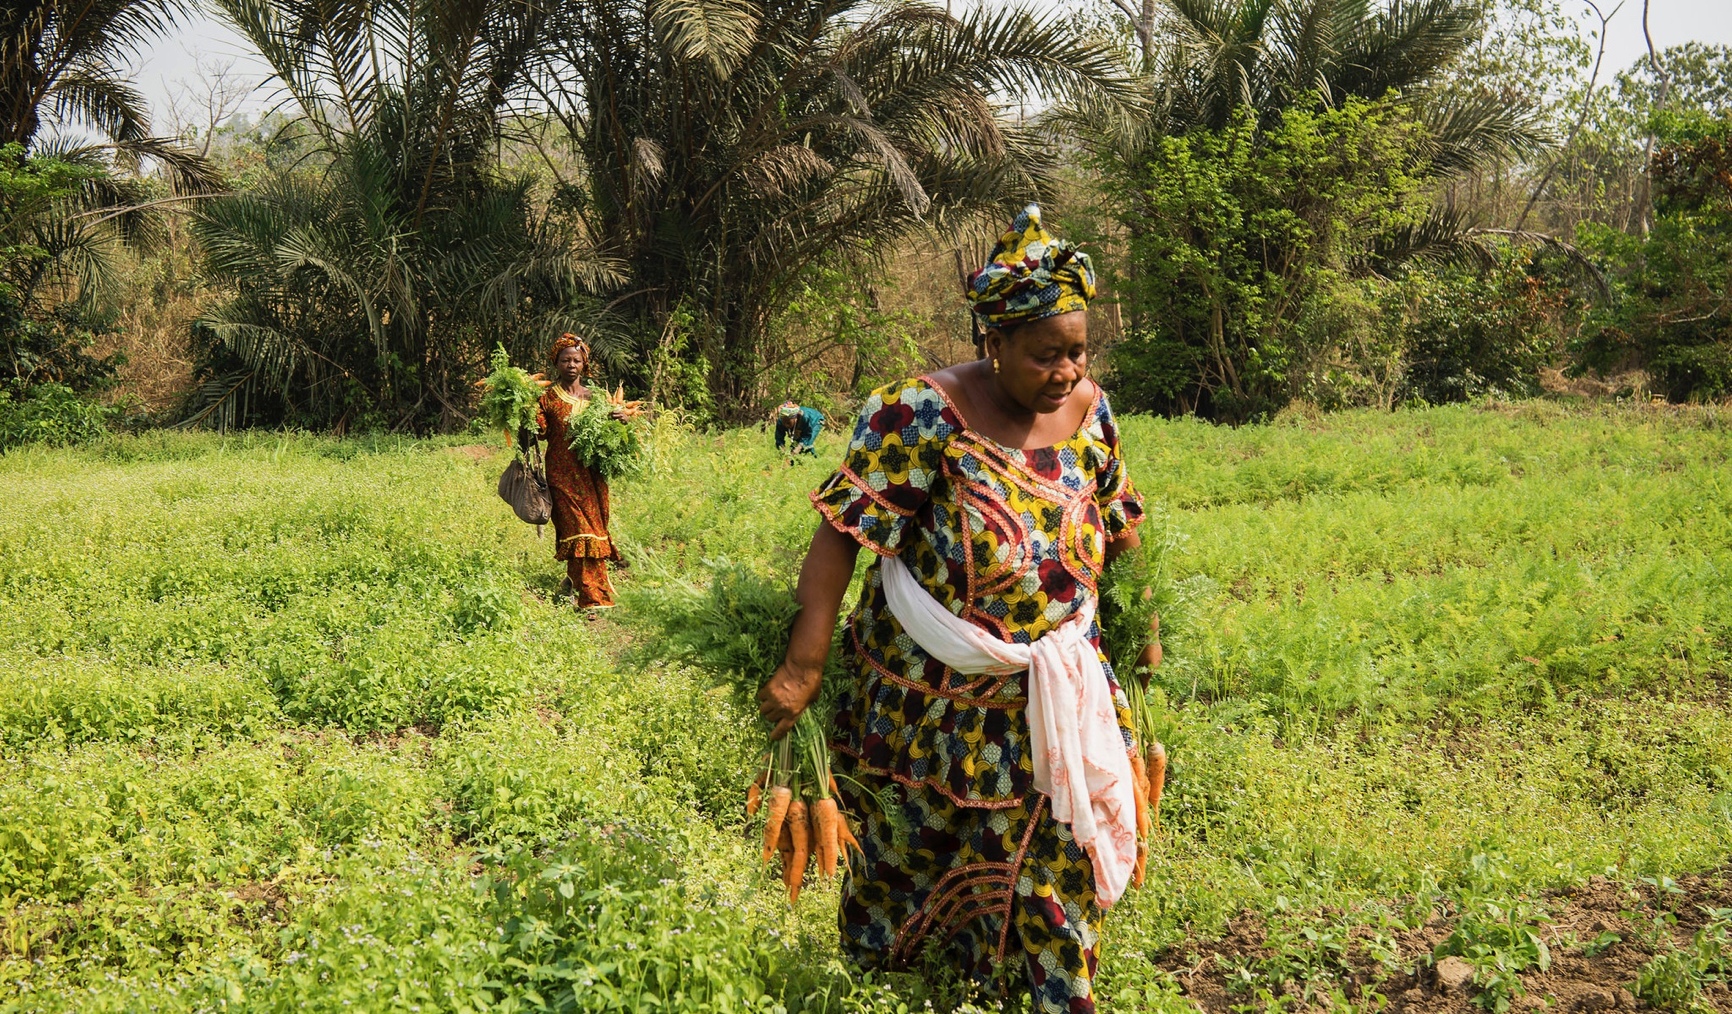 The odds against Nigerian women in agriculture